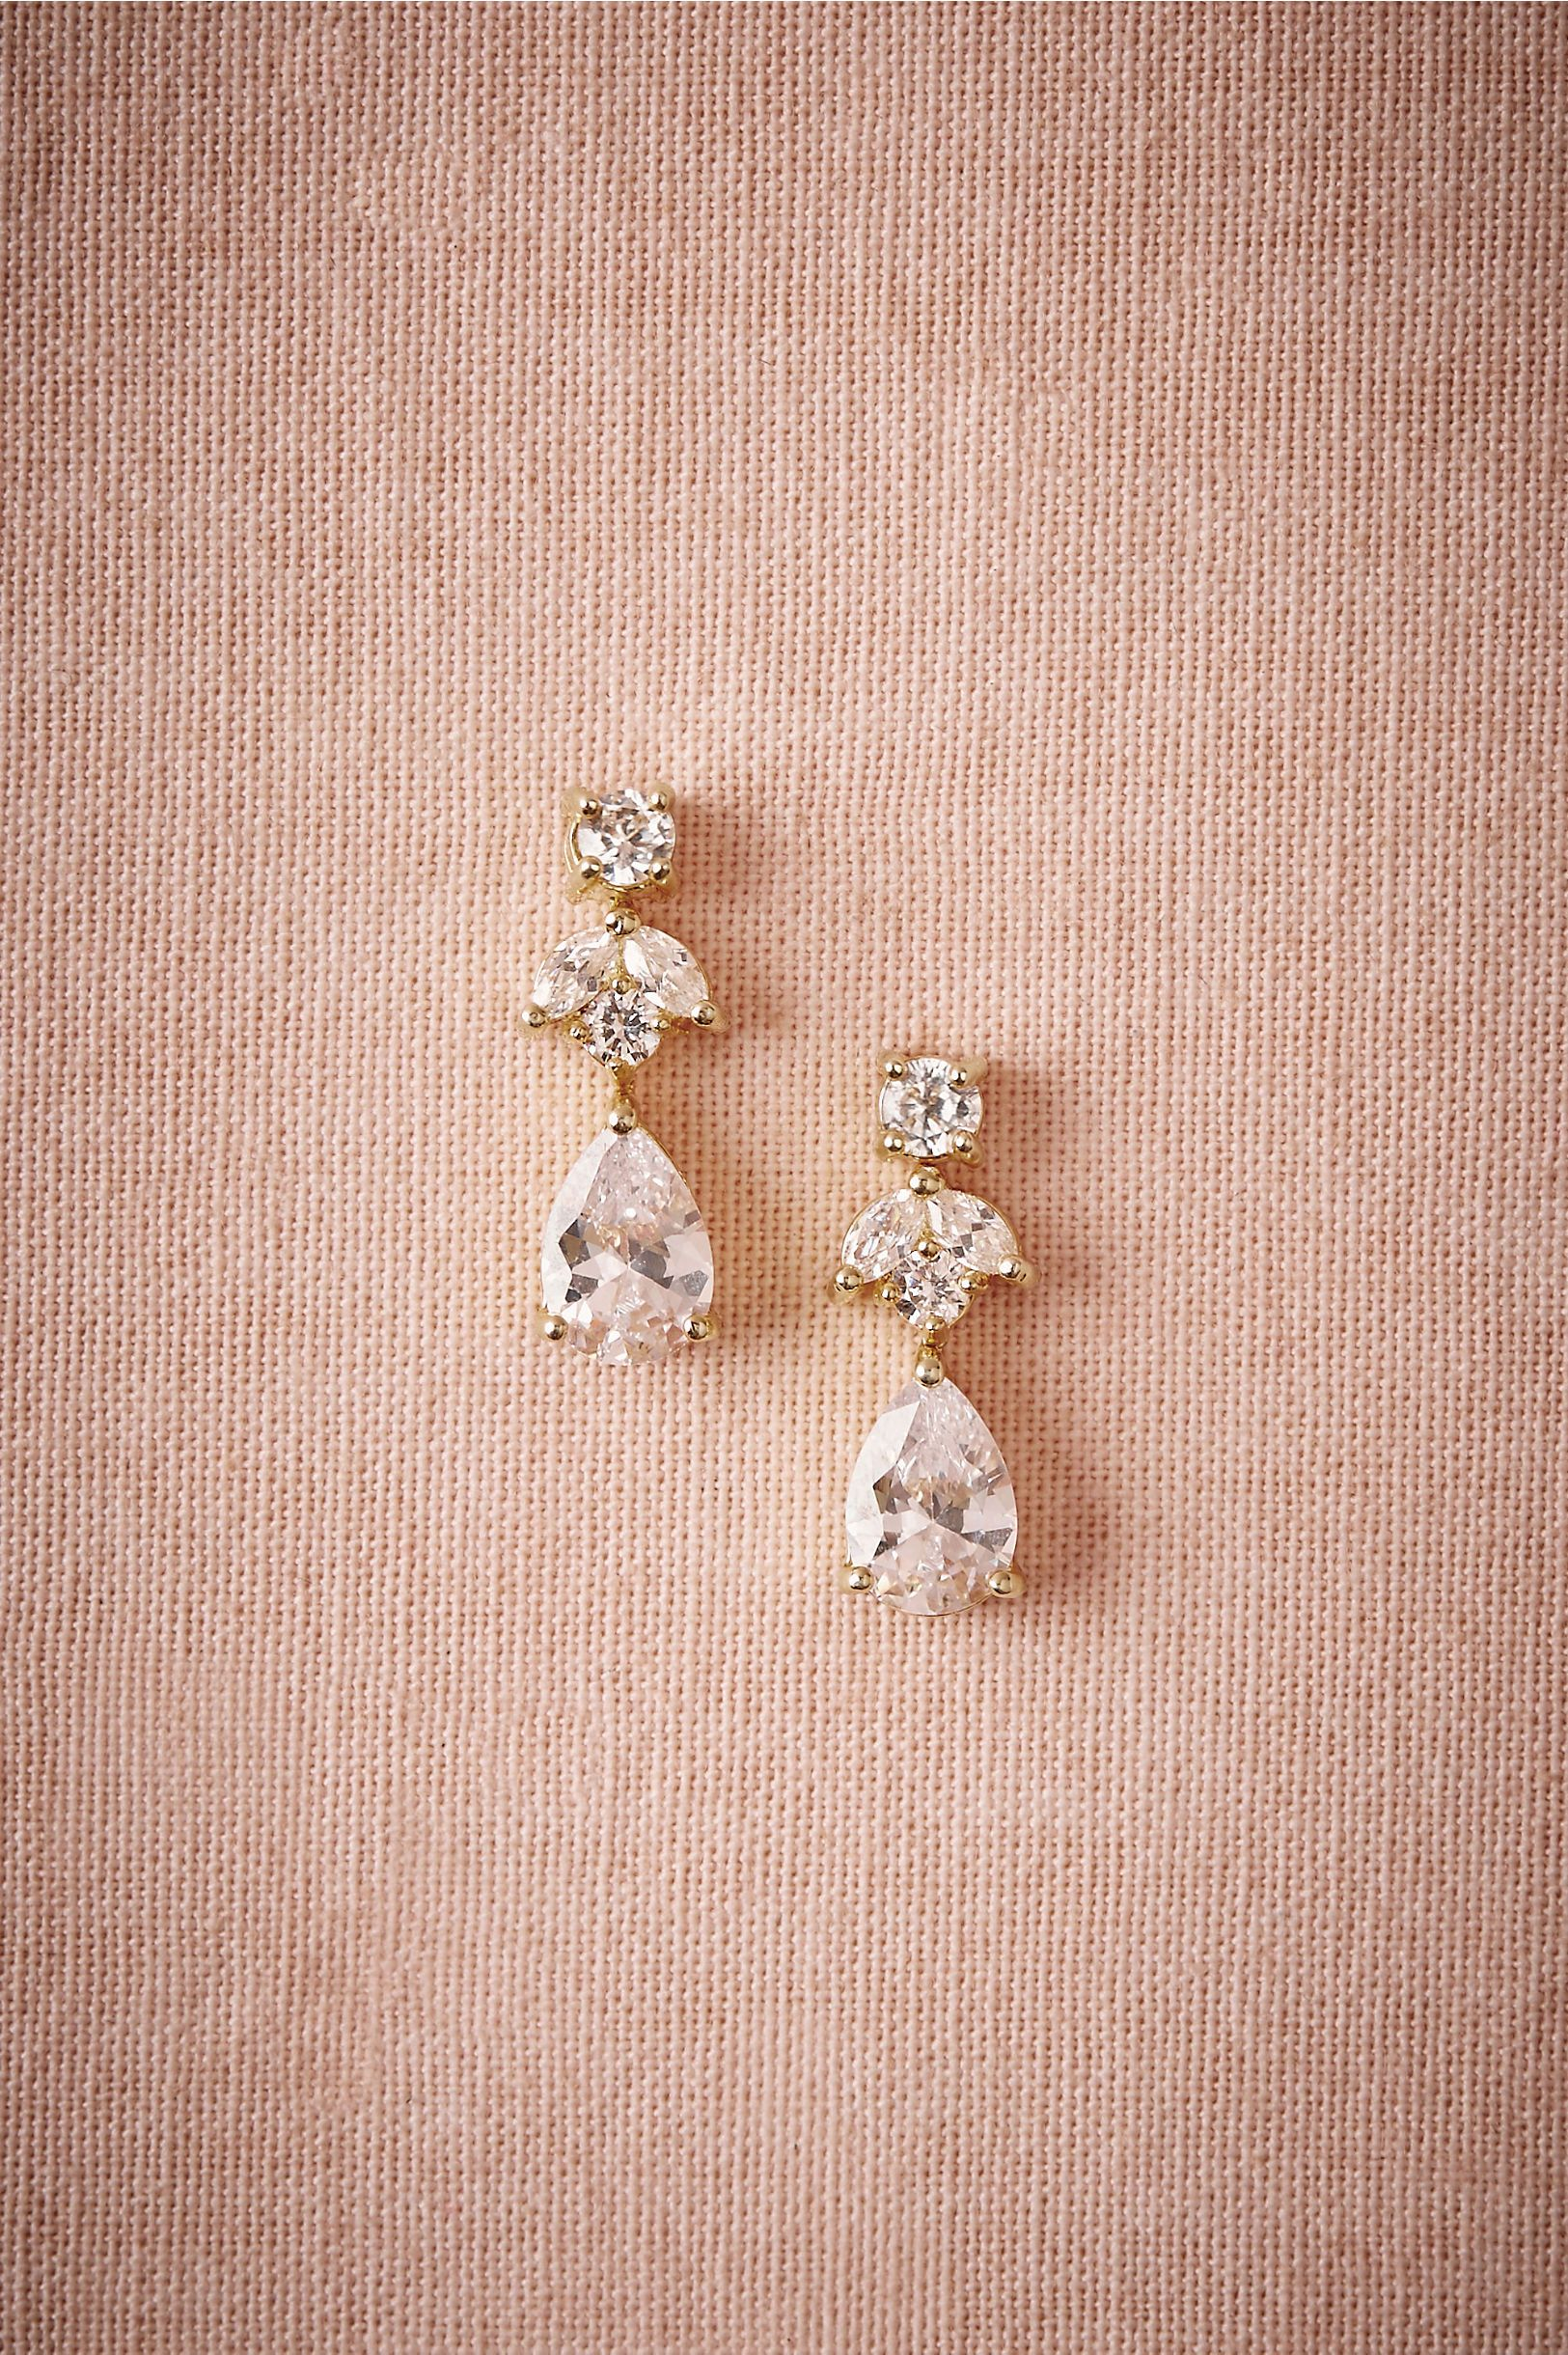 8e823d55a Petite Crystal Drops in Bride Bridal Jewelry Earrings at BHLDN ...